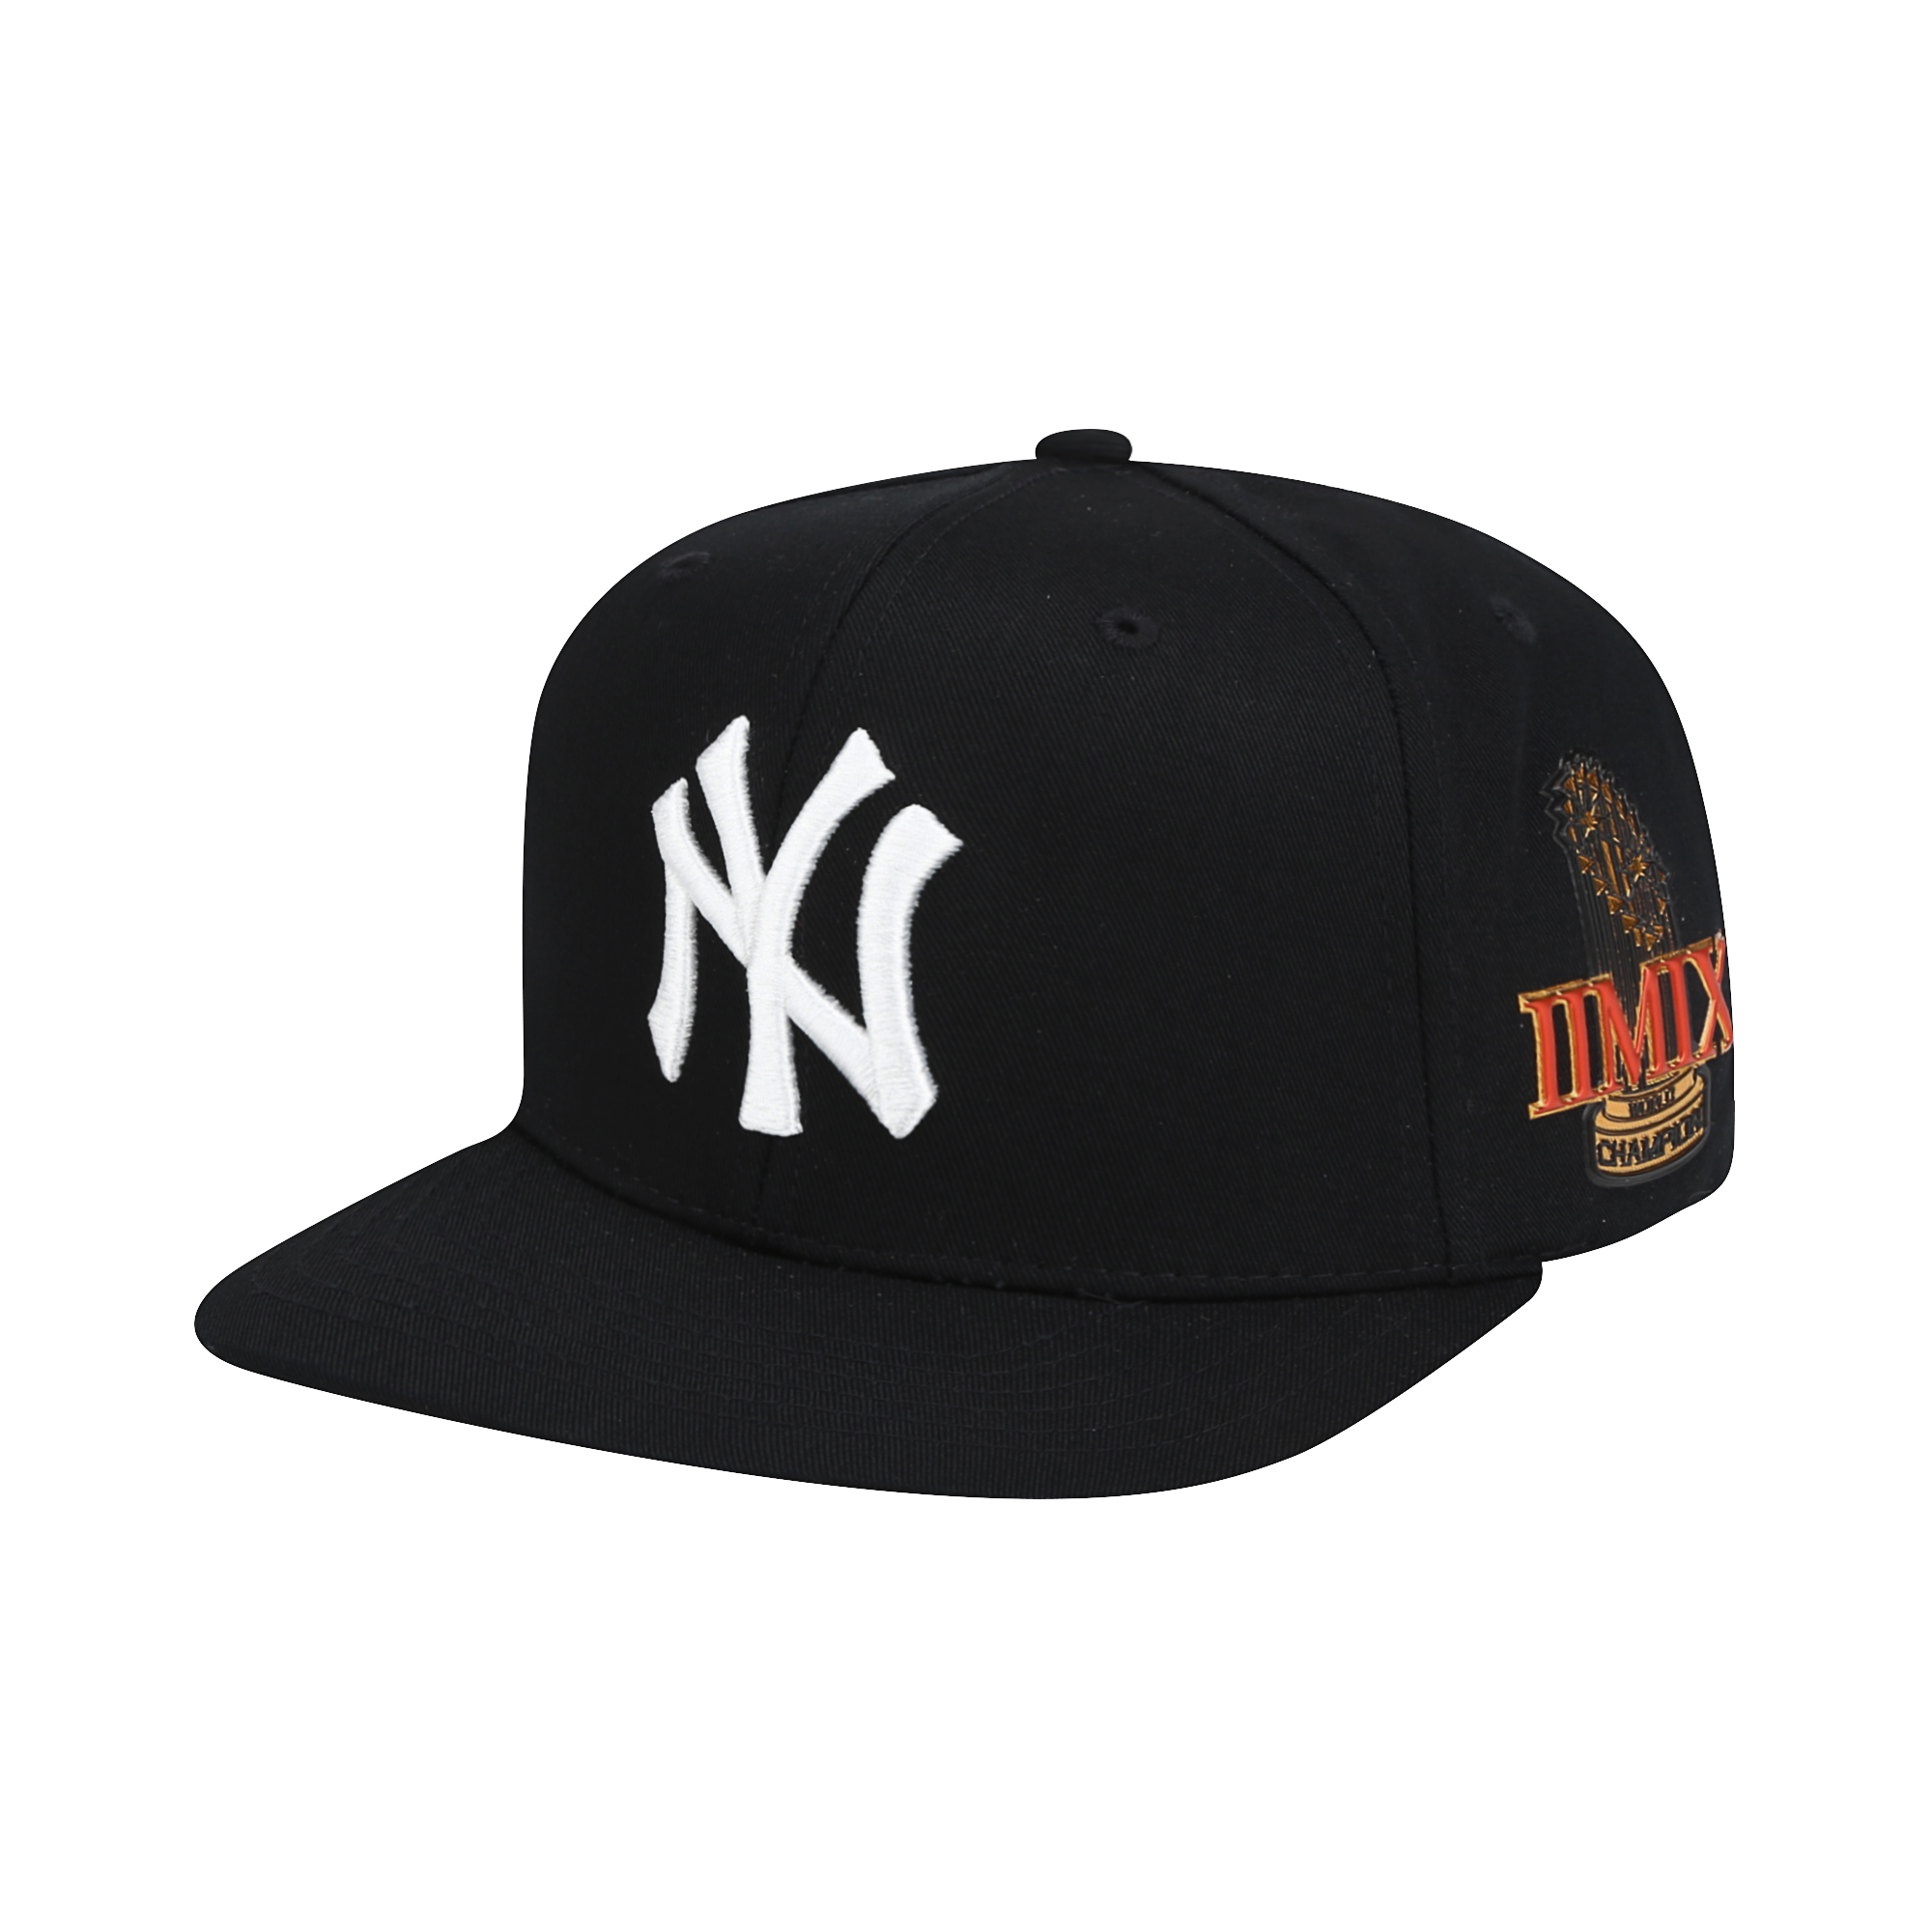 NEW YORK YANKEES CHAMPION SNAPBACK